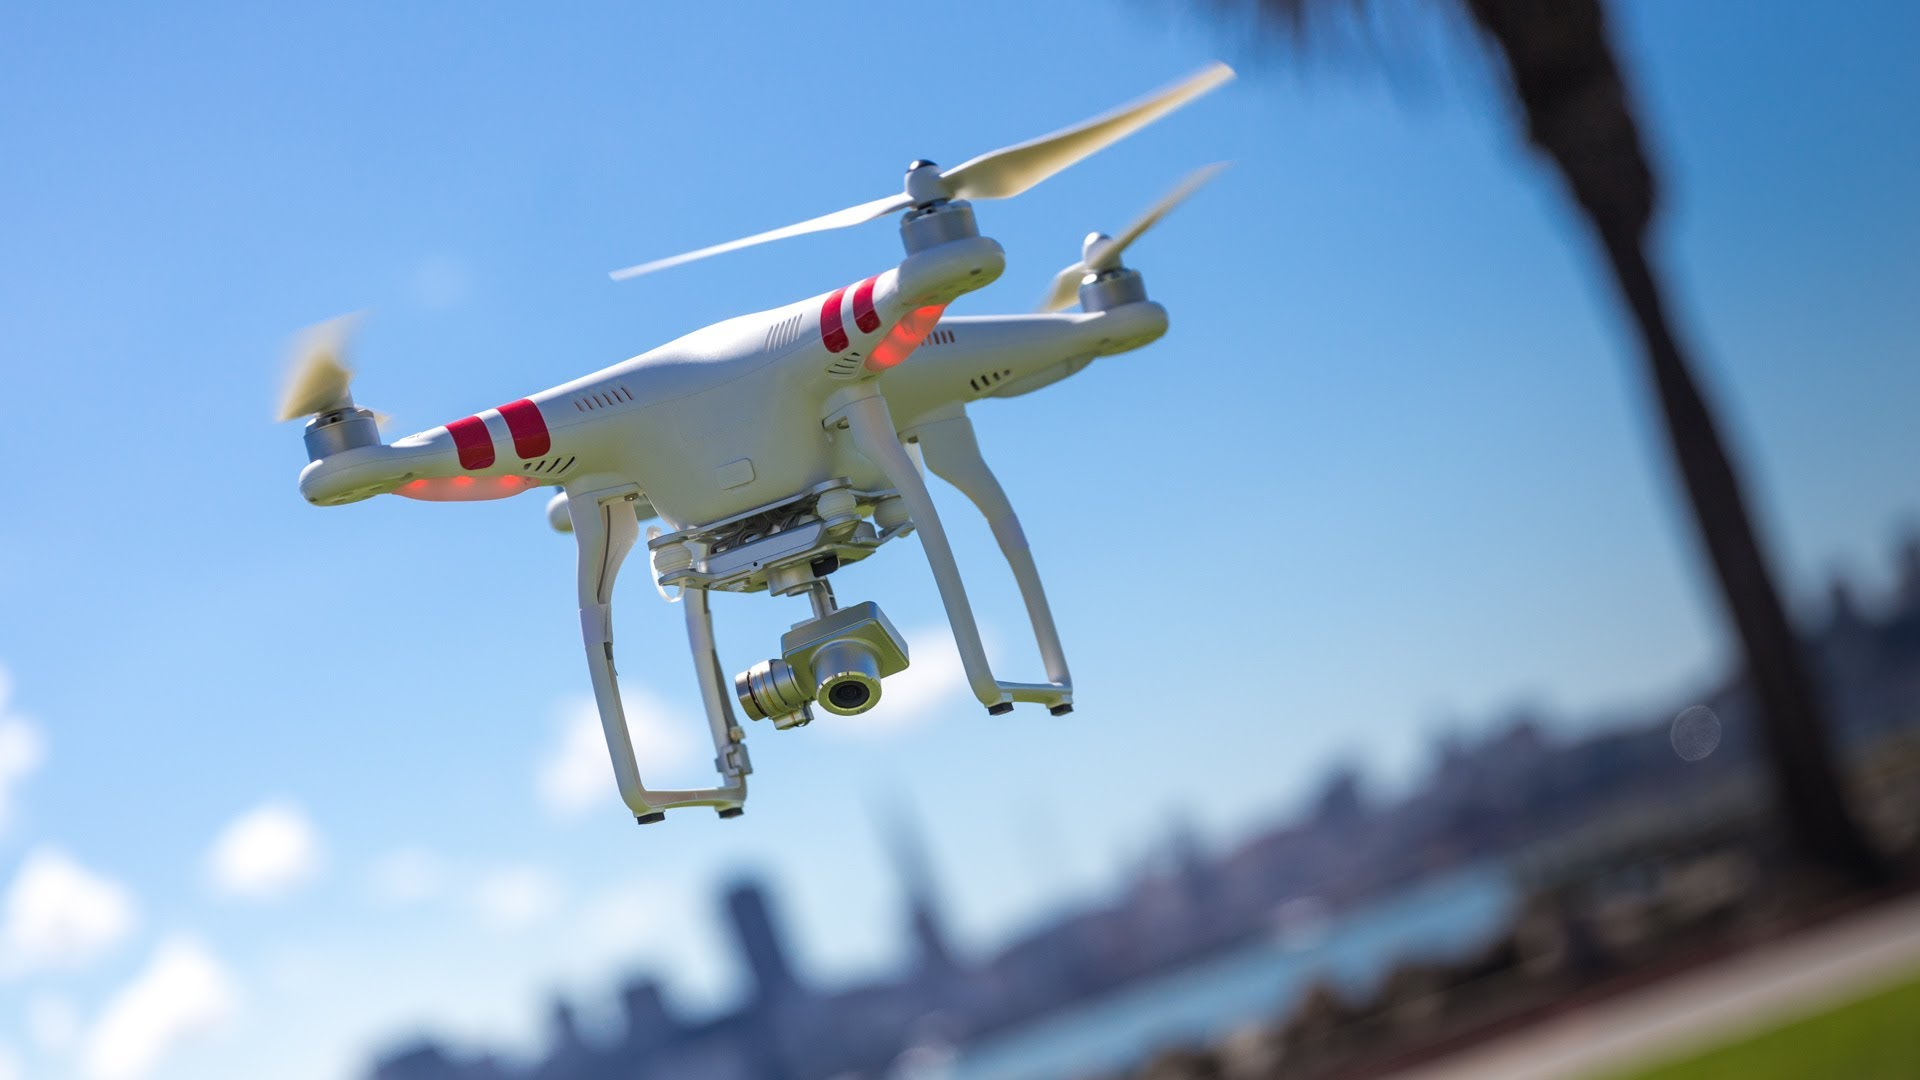 Top 10 Best Mini Quadcopter Choices — Greatest Reviews for You